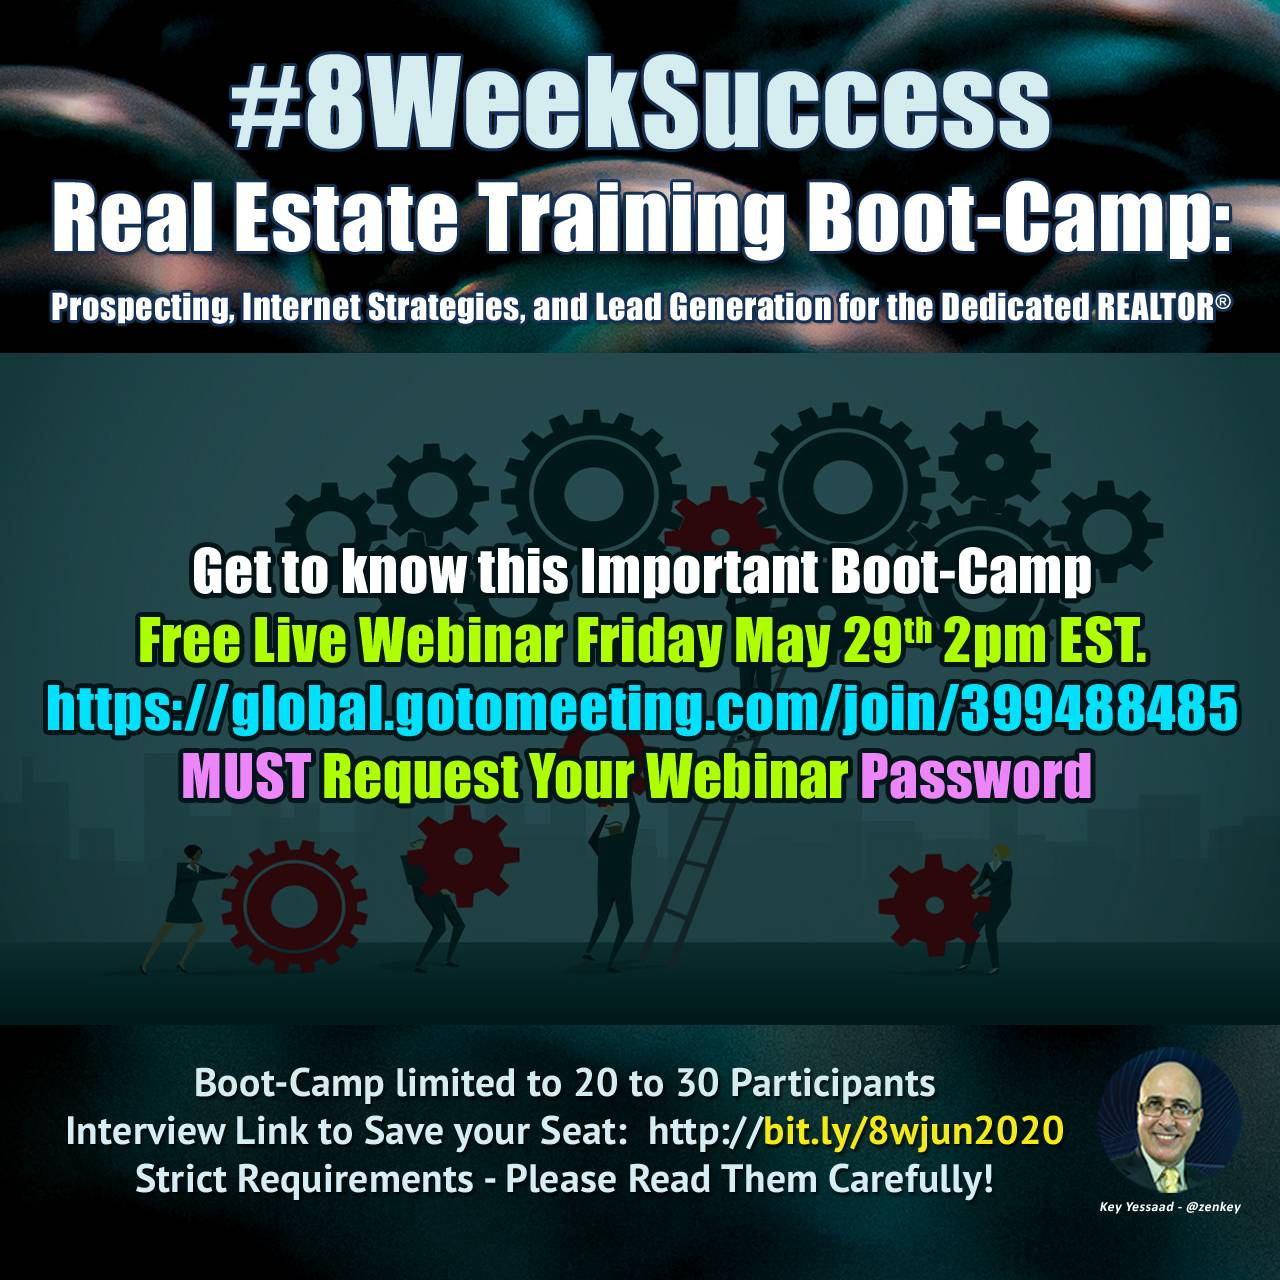 Get to know the #8WeekSuccess Real Estate Boot-Camp - Live Webinar Friday May 29th @ 2pm EST